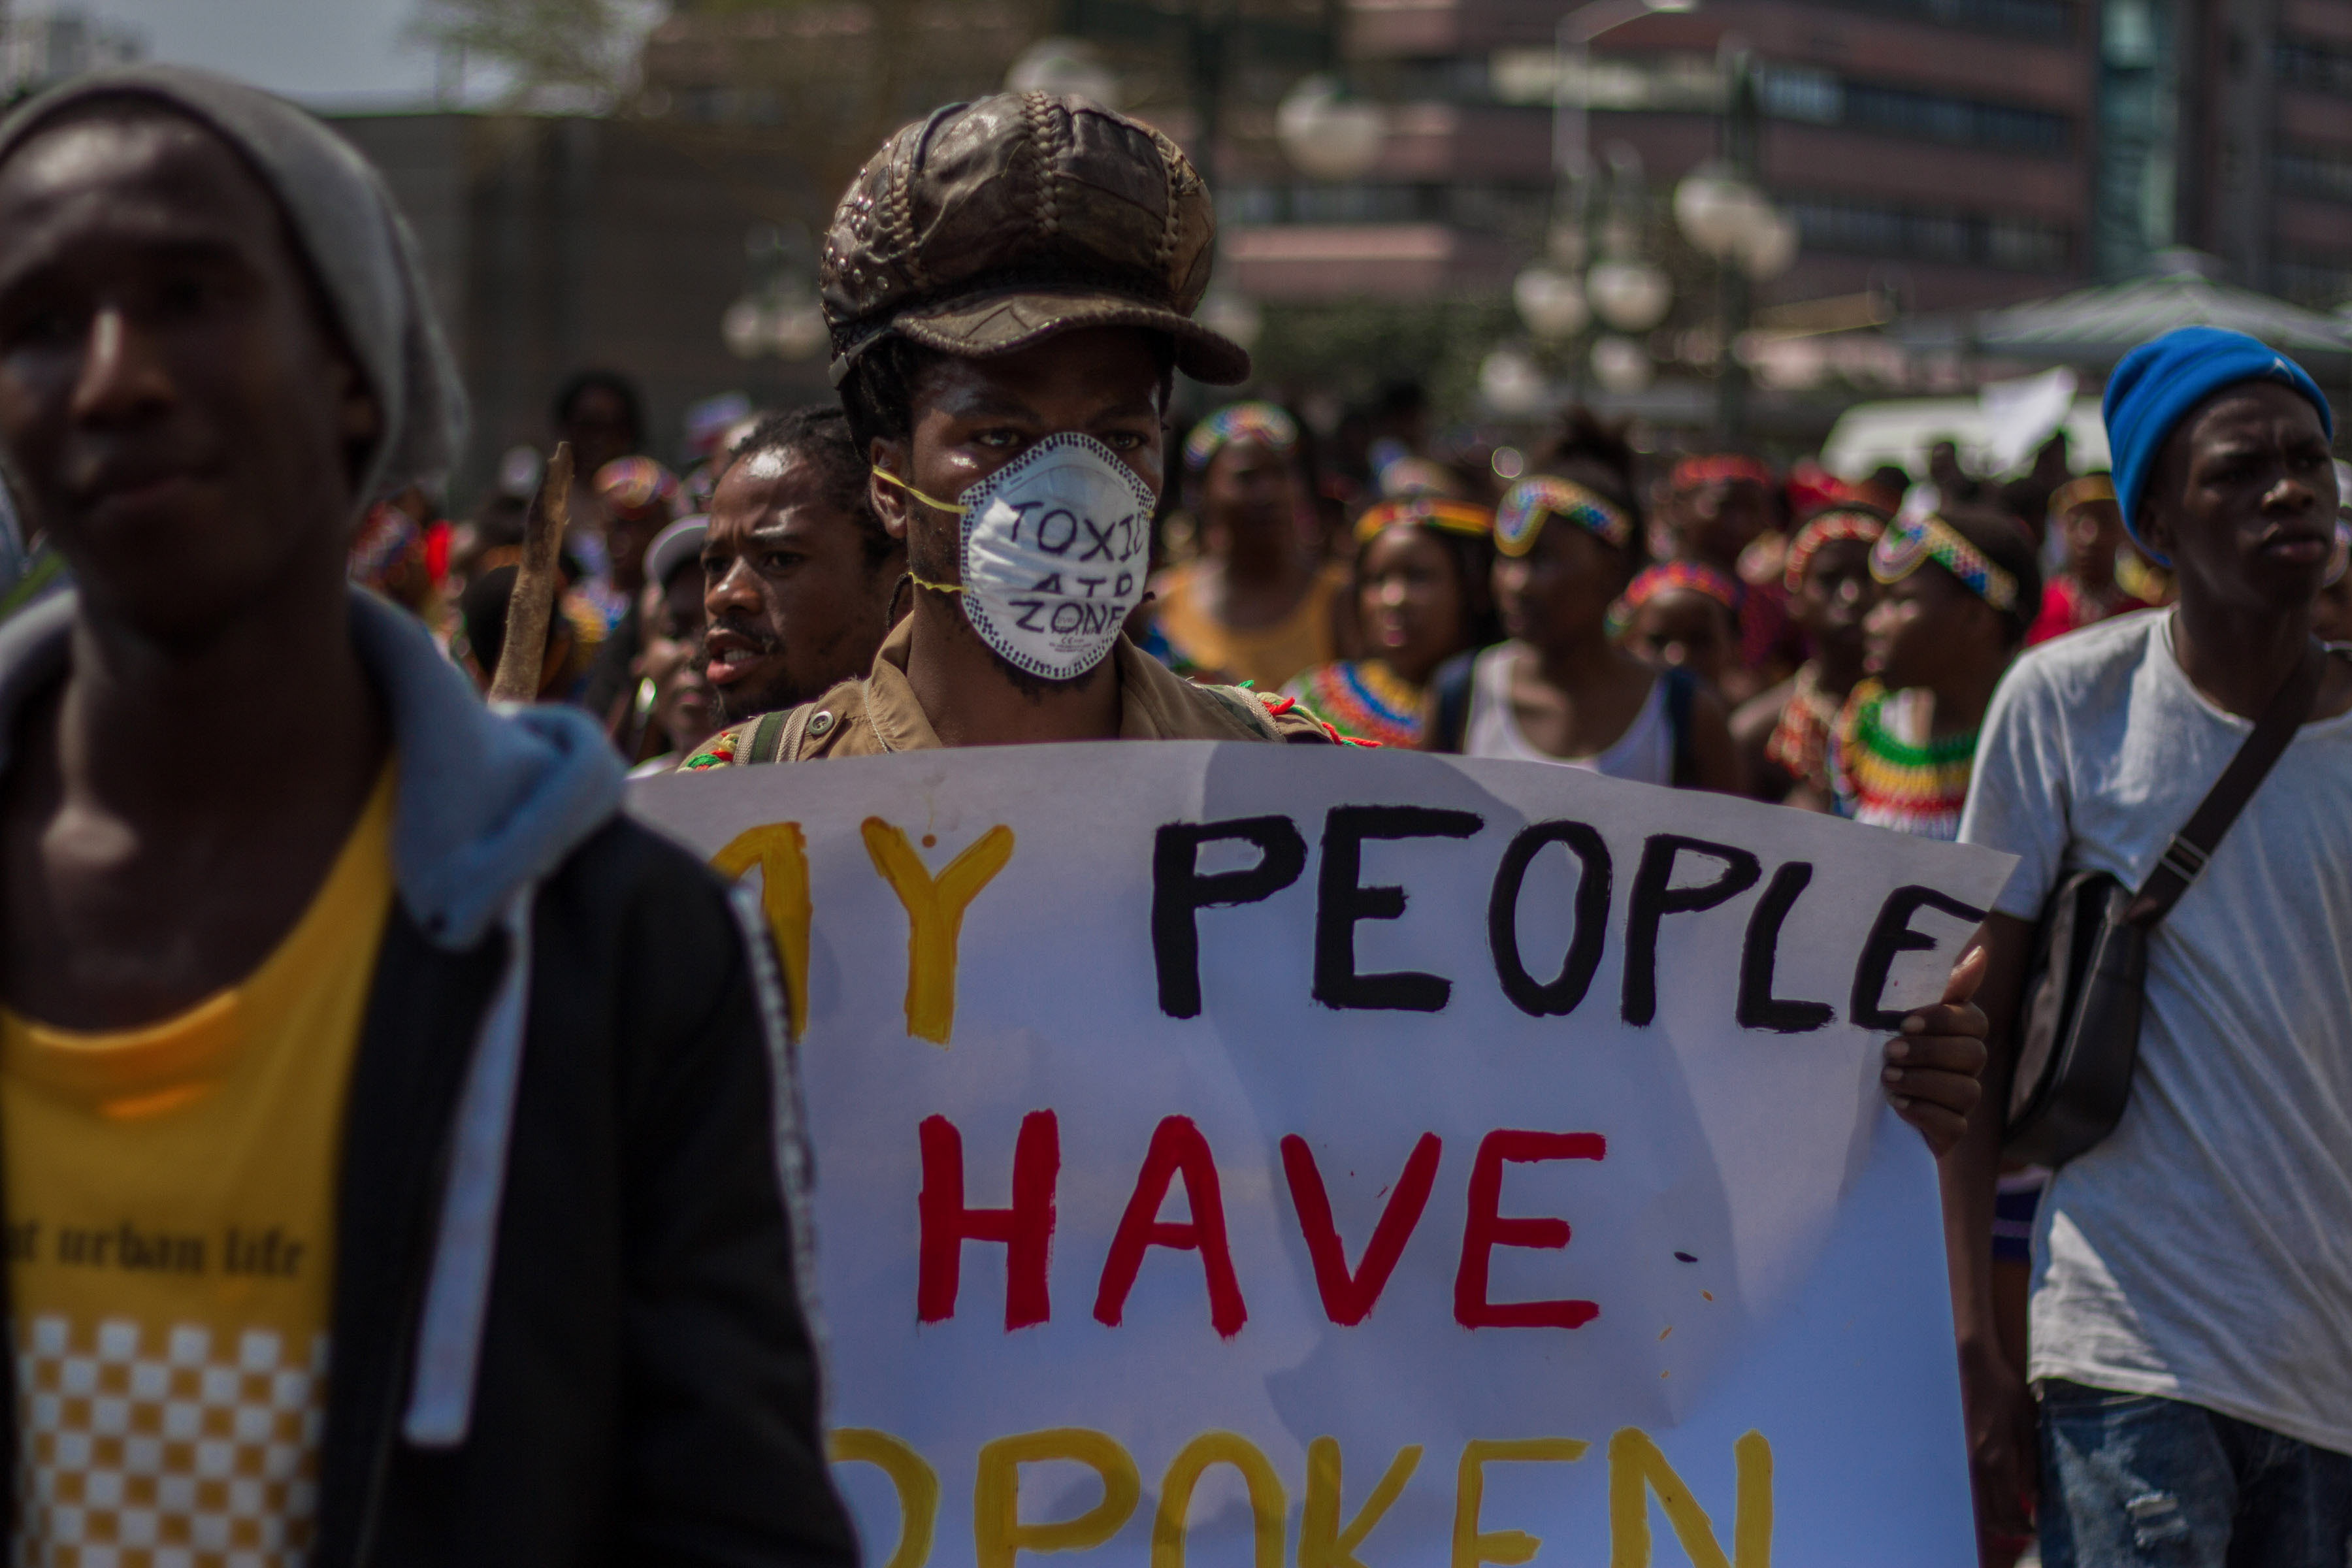 20 Septermber 2019: Crosby Hlongwane, 34, part of Climate Strike march that began outside Inkosi Albert Luthuli International Convention Centre in Durban and ended at Durban's City Hall. (Photograph by Mlungisi Mbele)